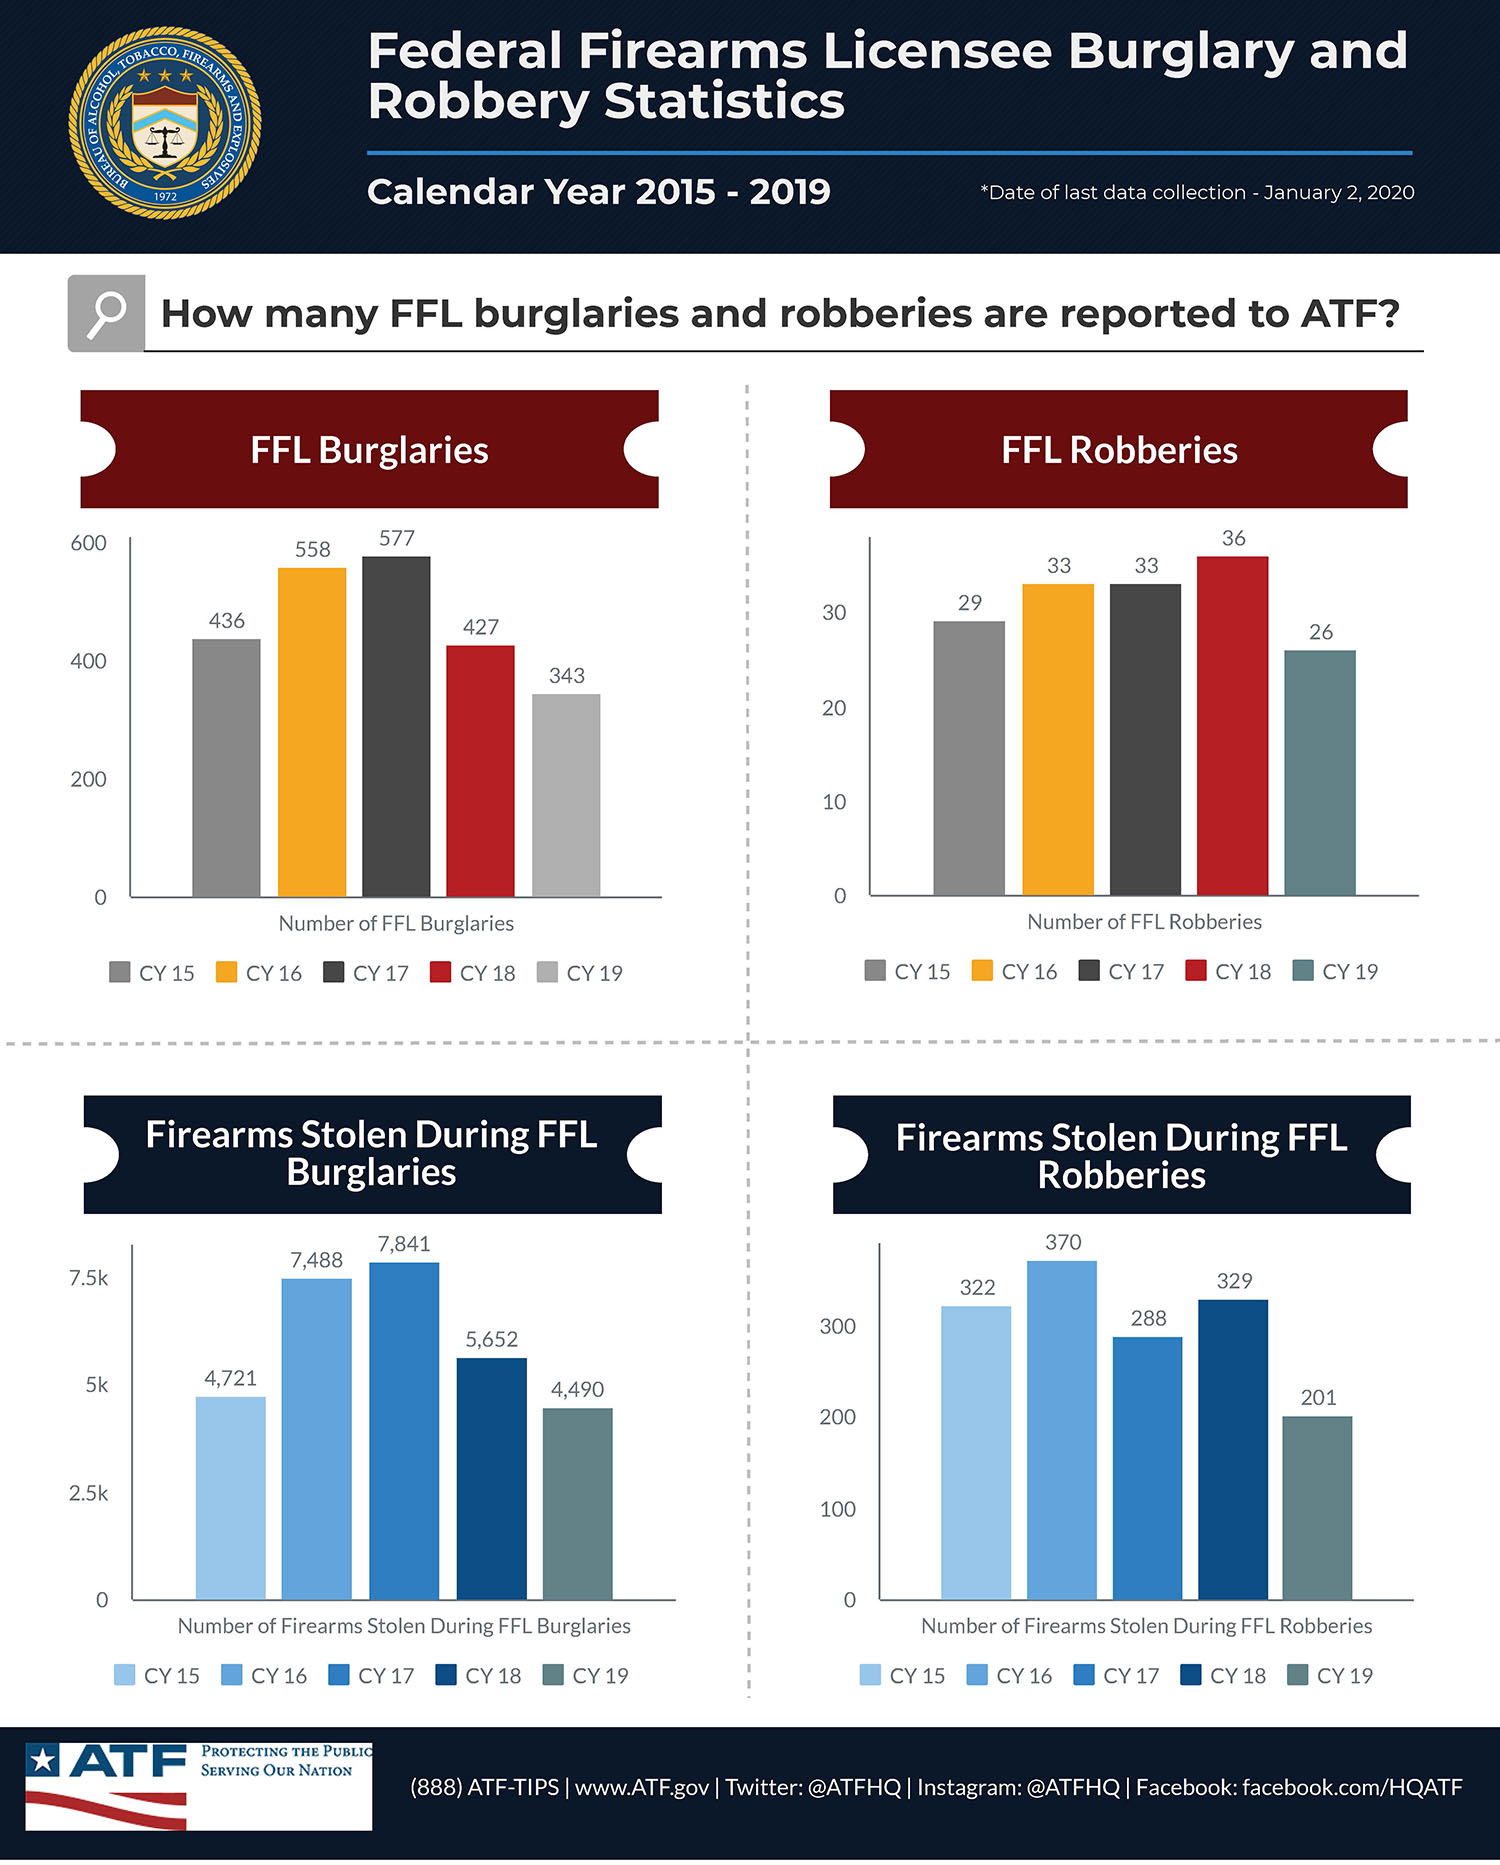 Federal Firearms Licensees (FFL) Burglary and Robbery Statistics - Calendar Years 2015-2019